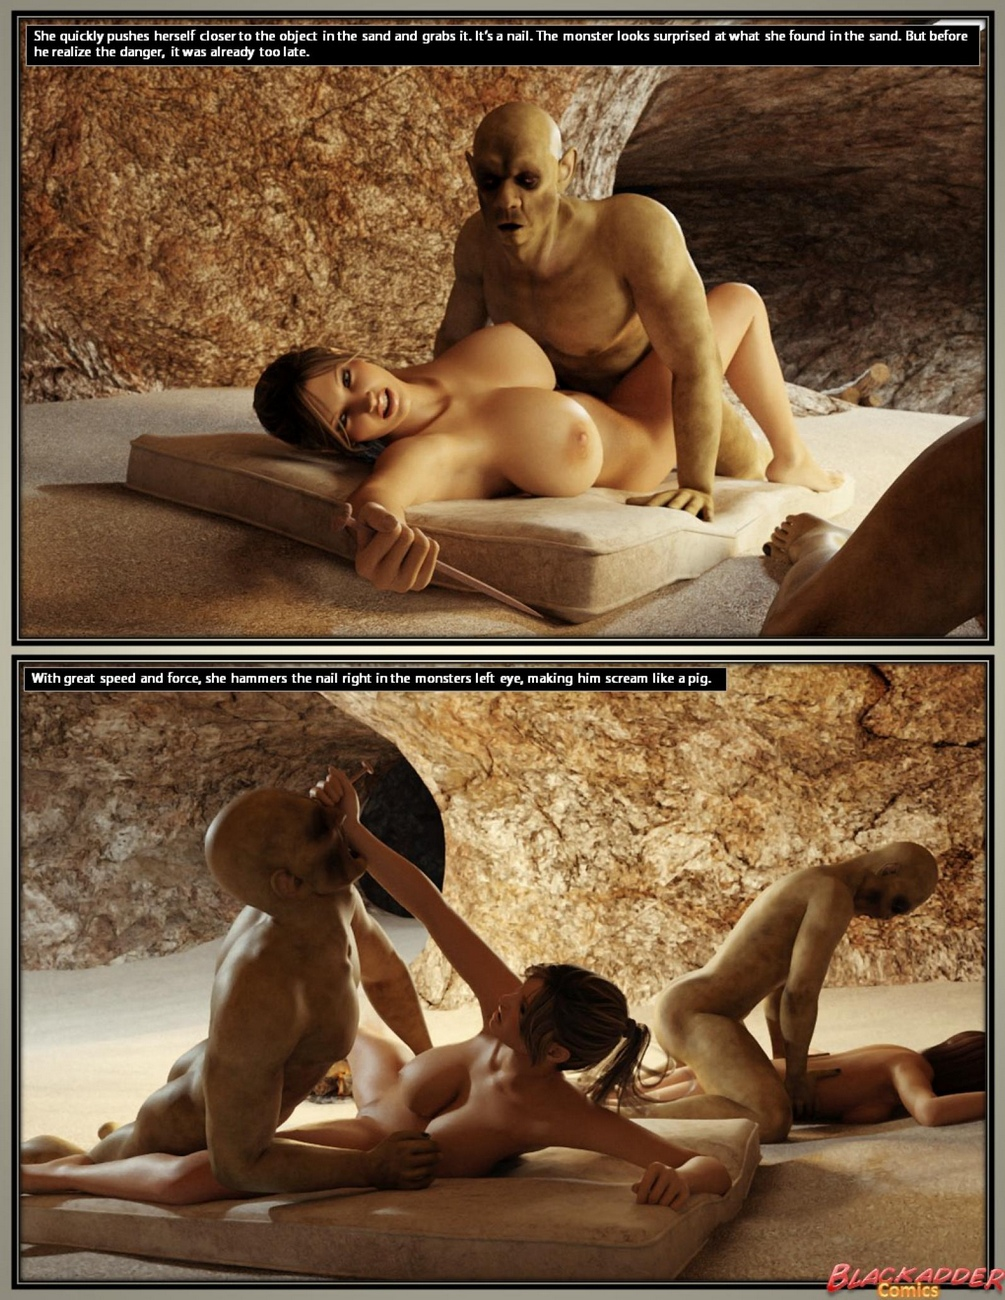 Human sacrifice video porn adult images